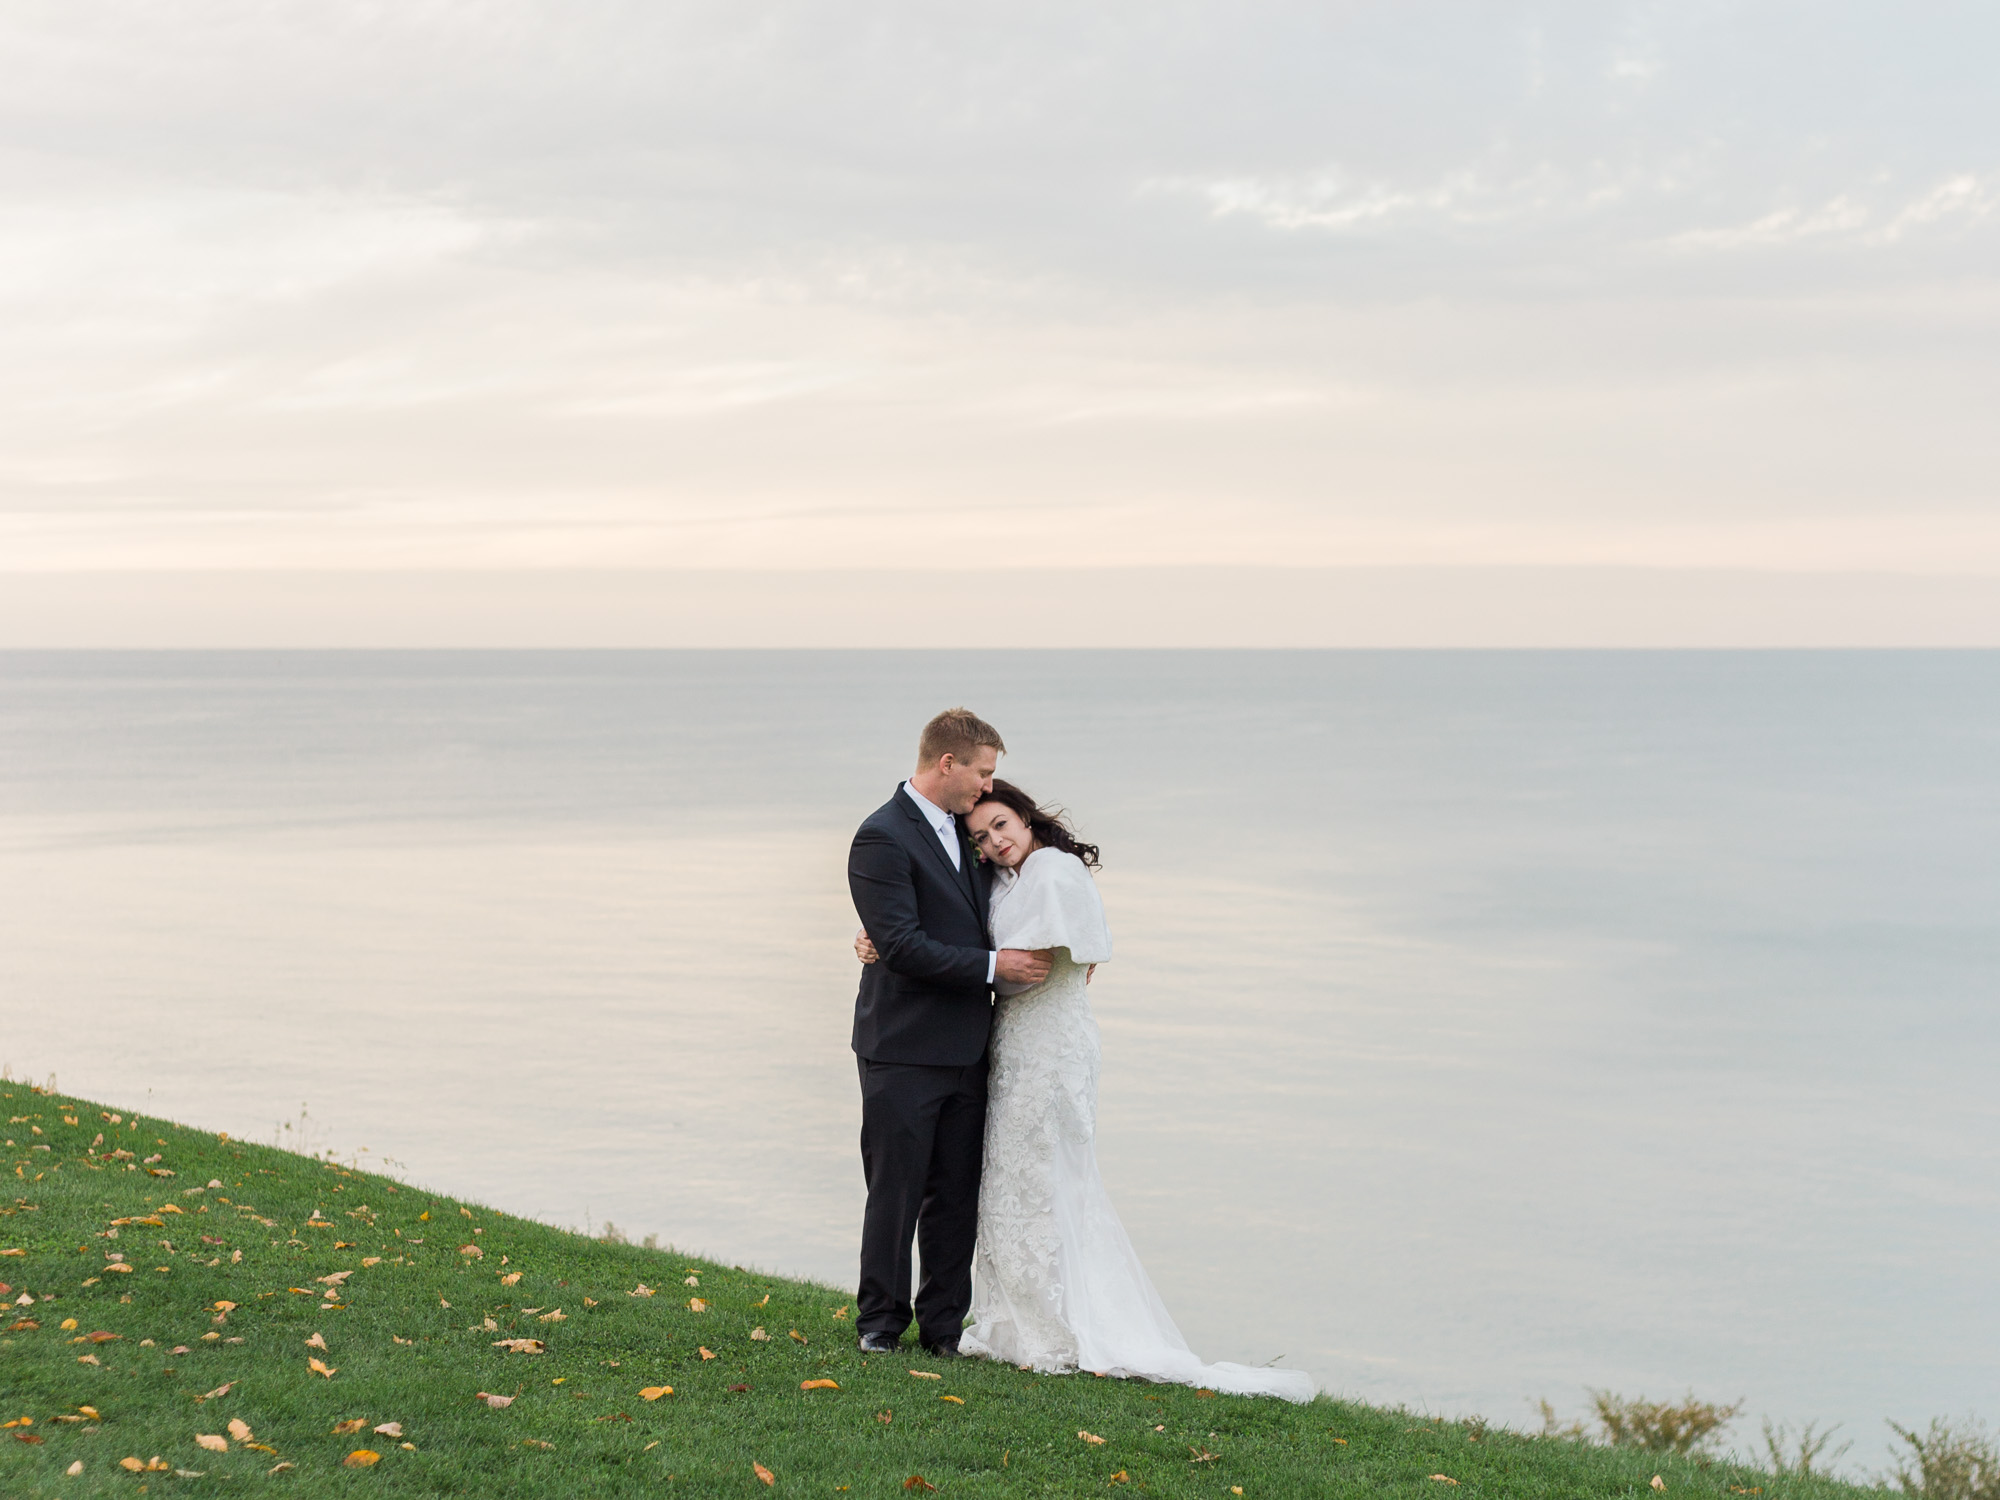 Lakeside Wedding by Cleveland Wedding Photographer Matt Erickson Photography